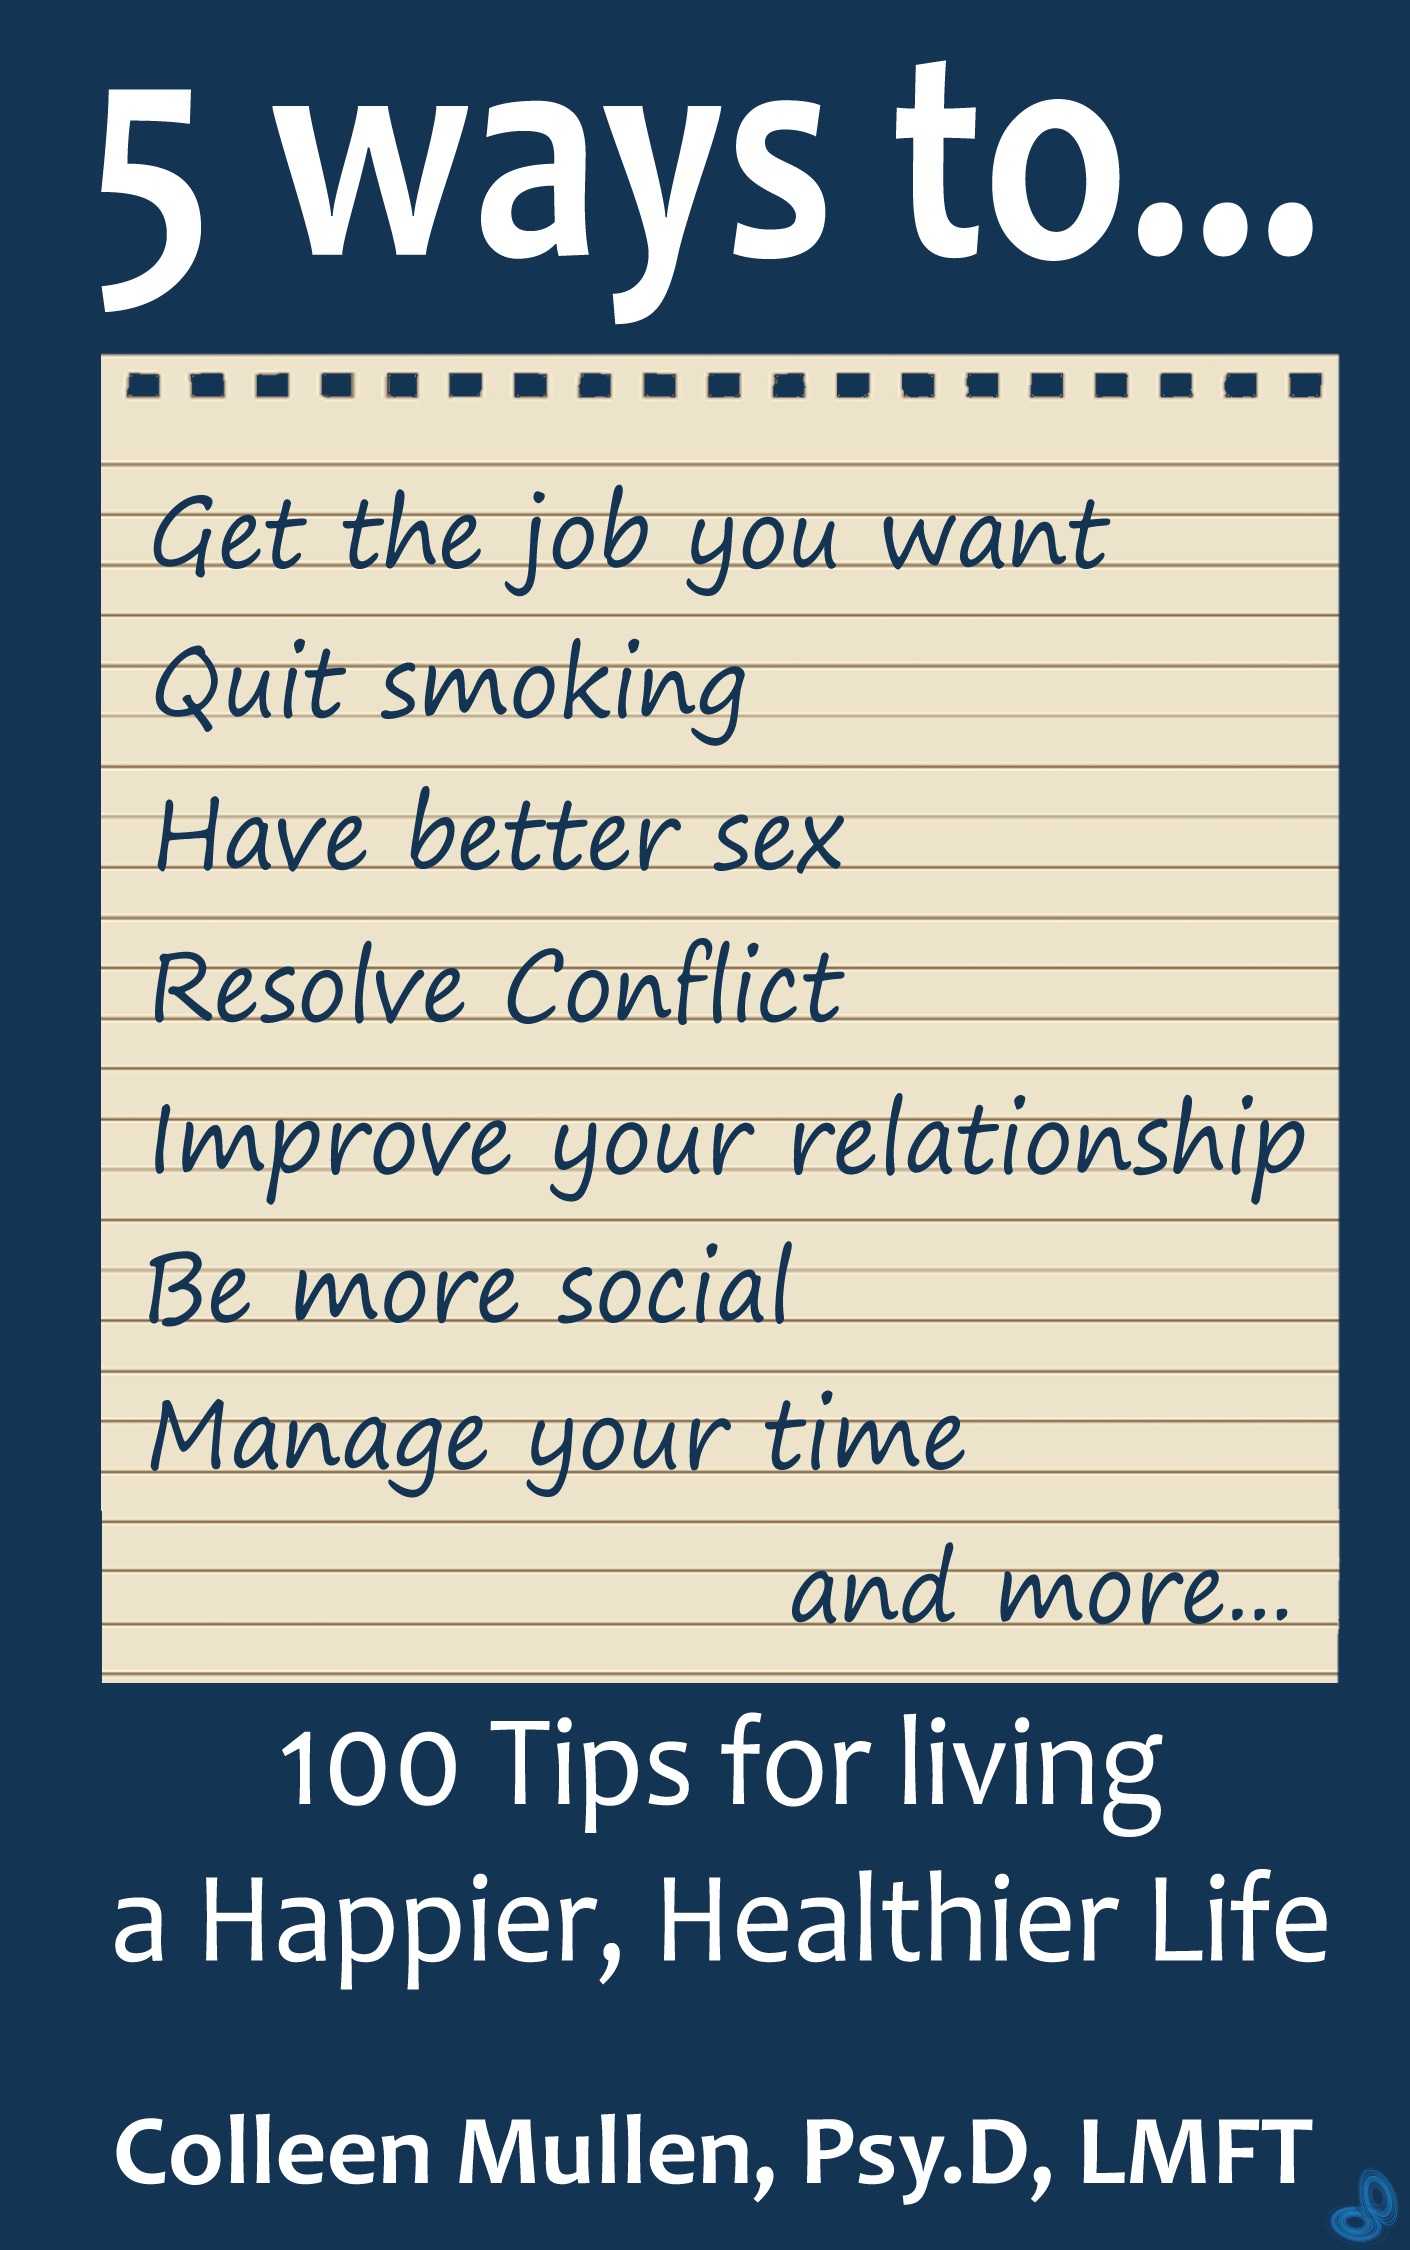 100 tips for living a happier healthier life